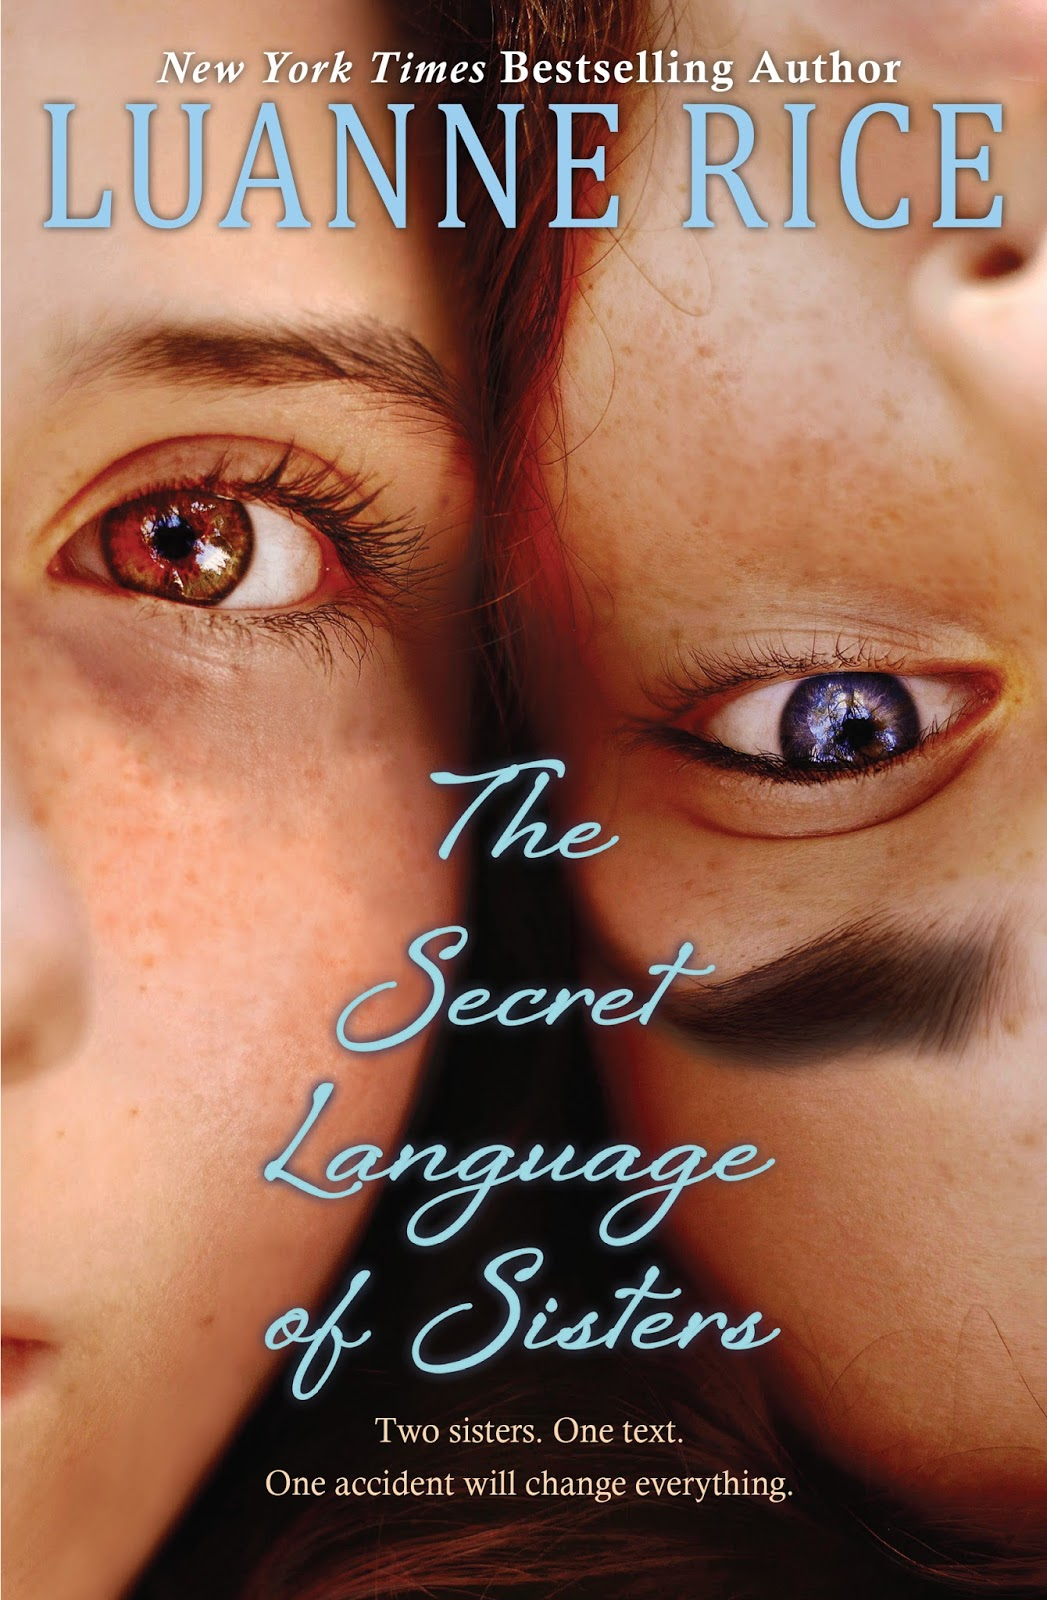 LibrisNotes: The Secret Language of Sisters by Luanne Rice